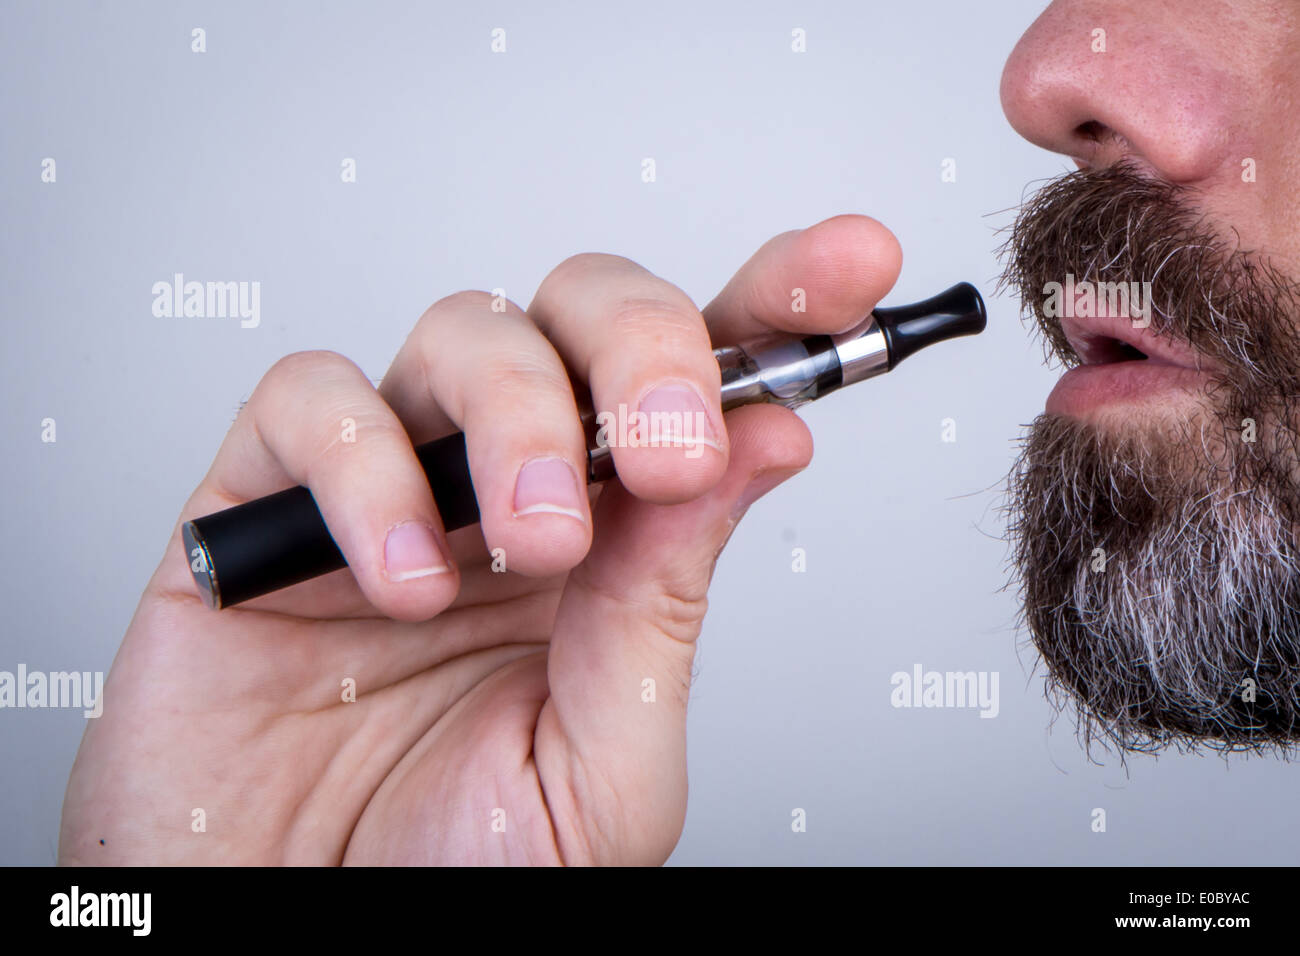 Bearded man using a vaporiser - Stock Image